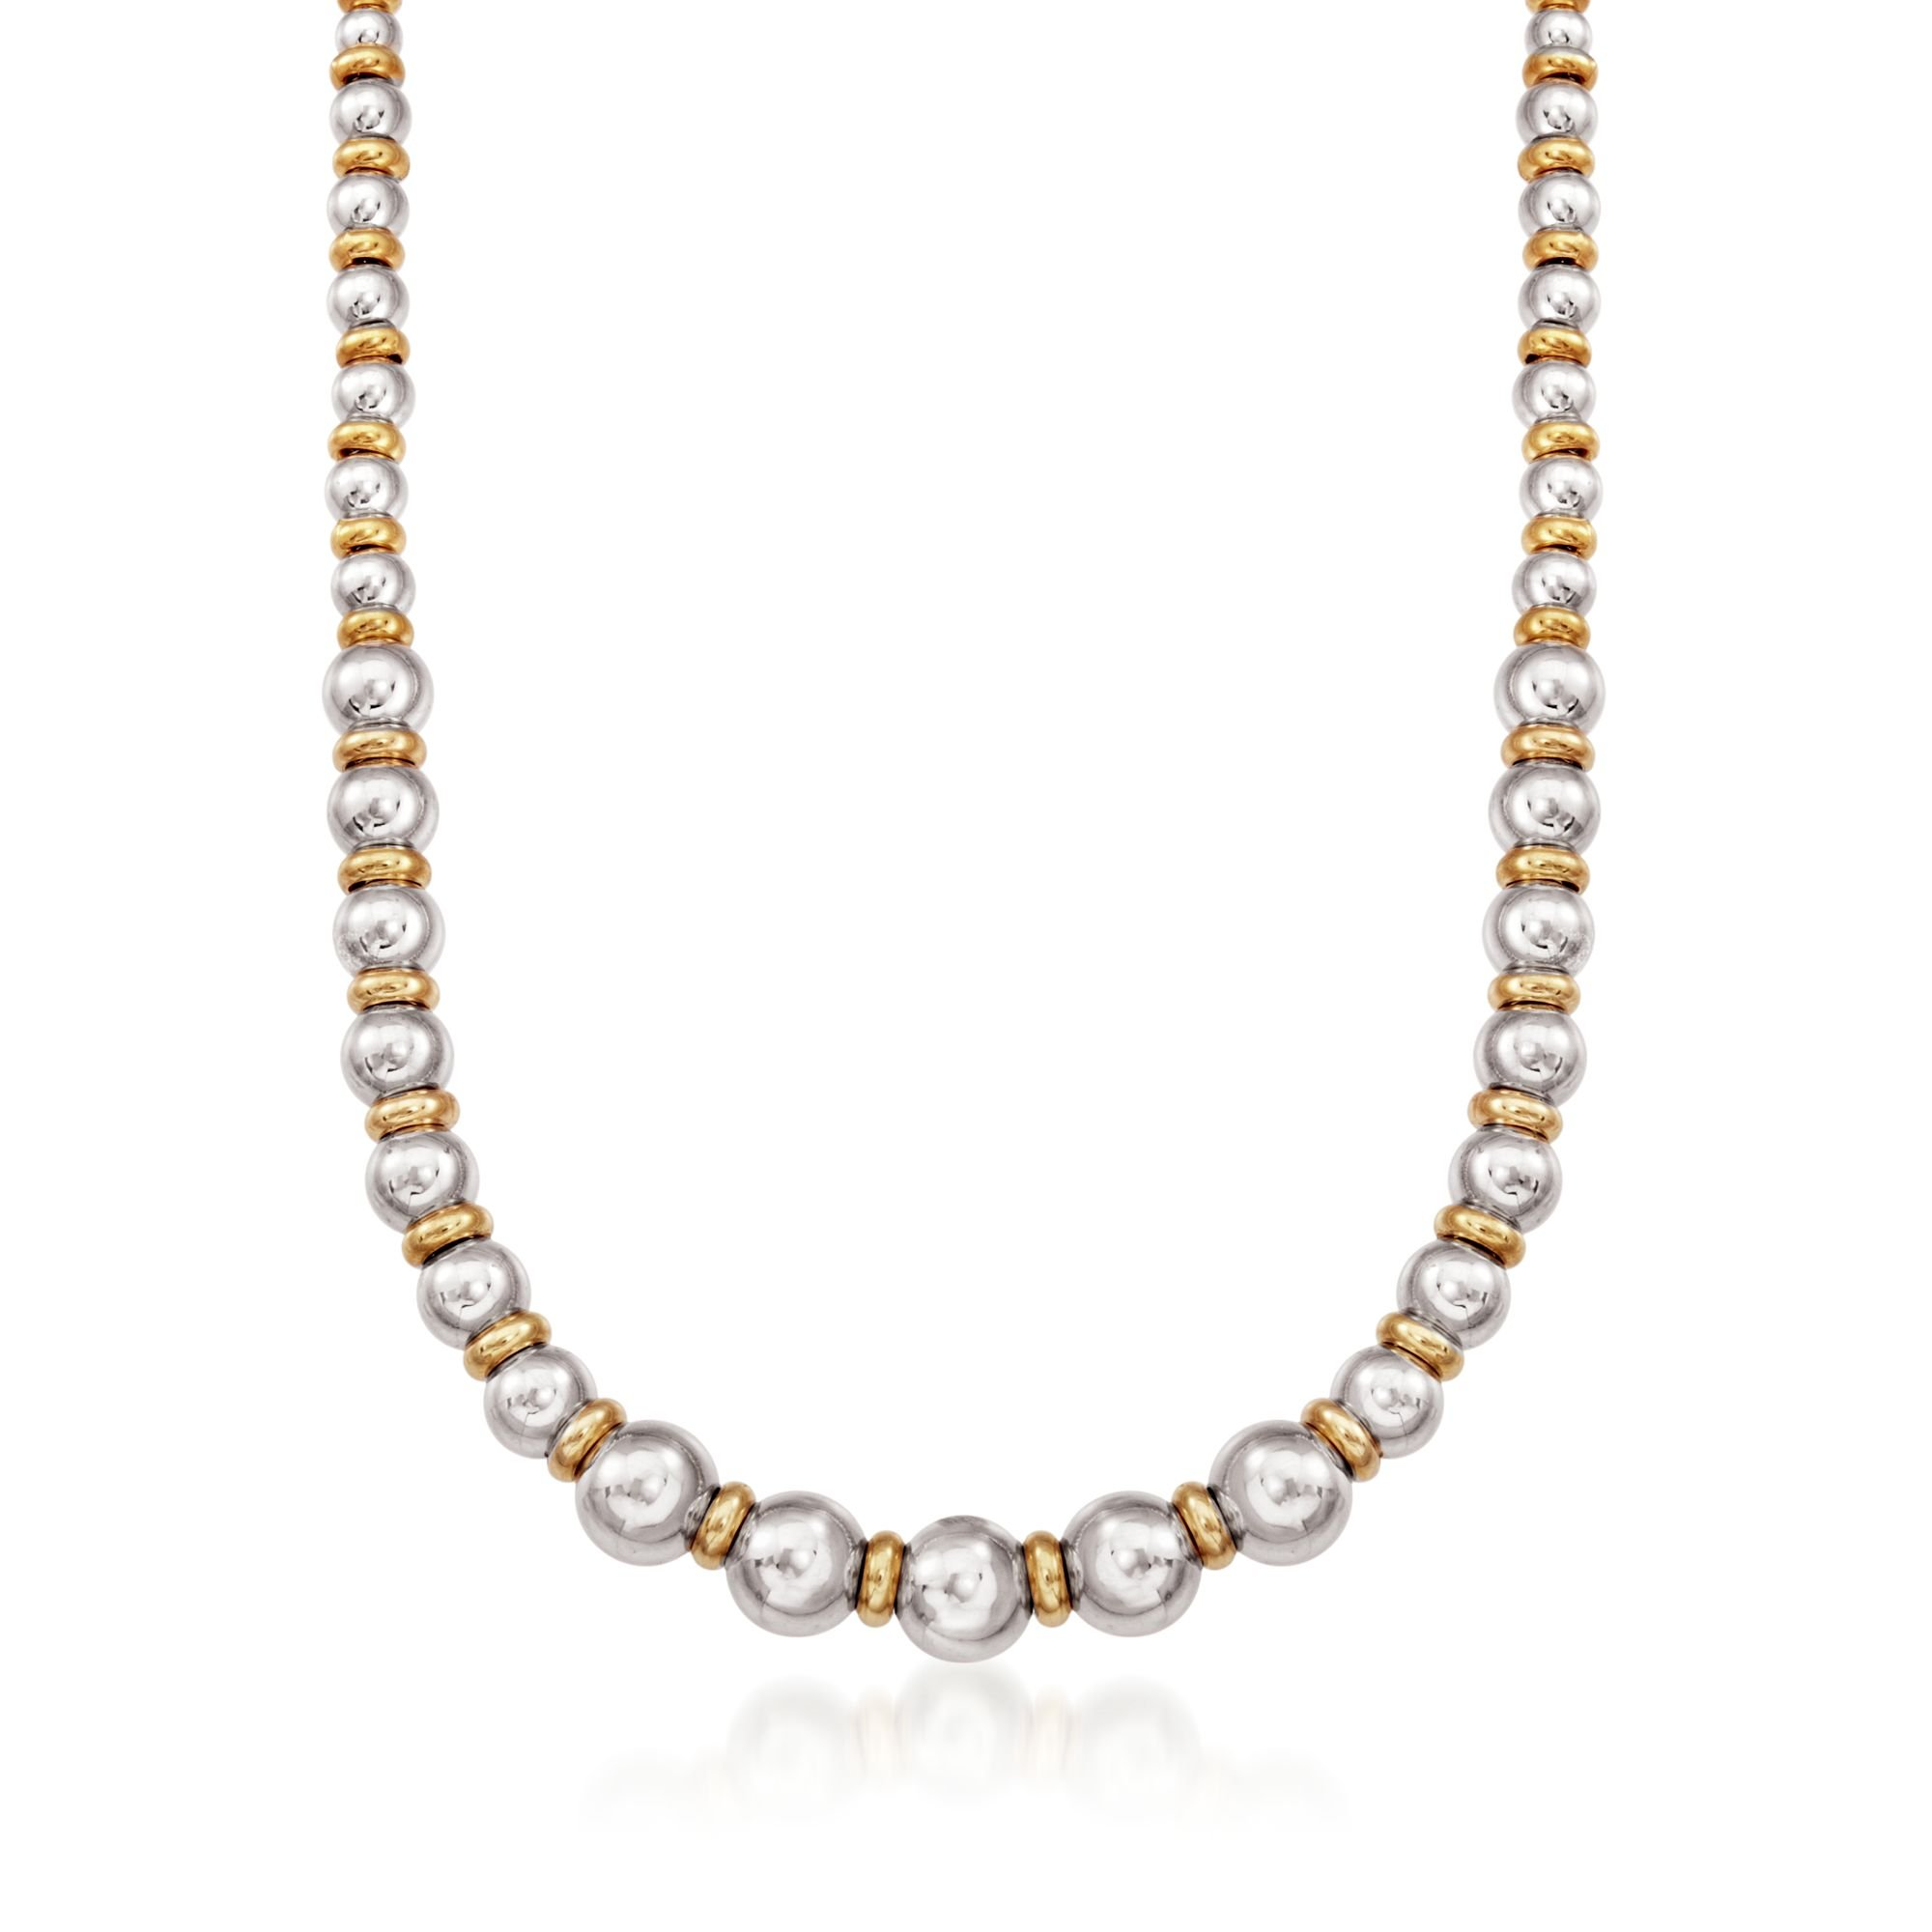 Ross-Simons Italian Two-Tone Sterling Silver Graduated Bead and Rondelle Necklace